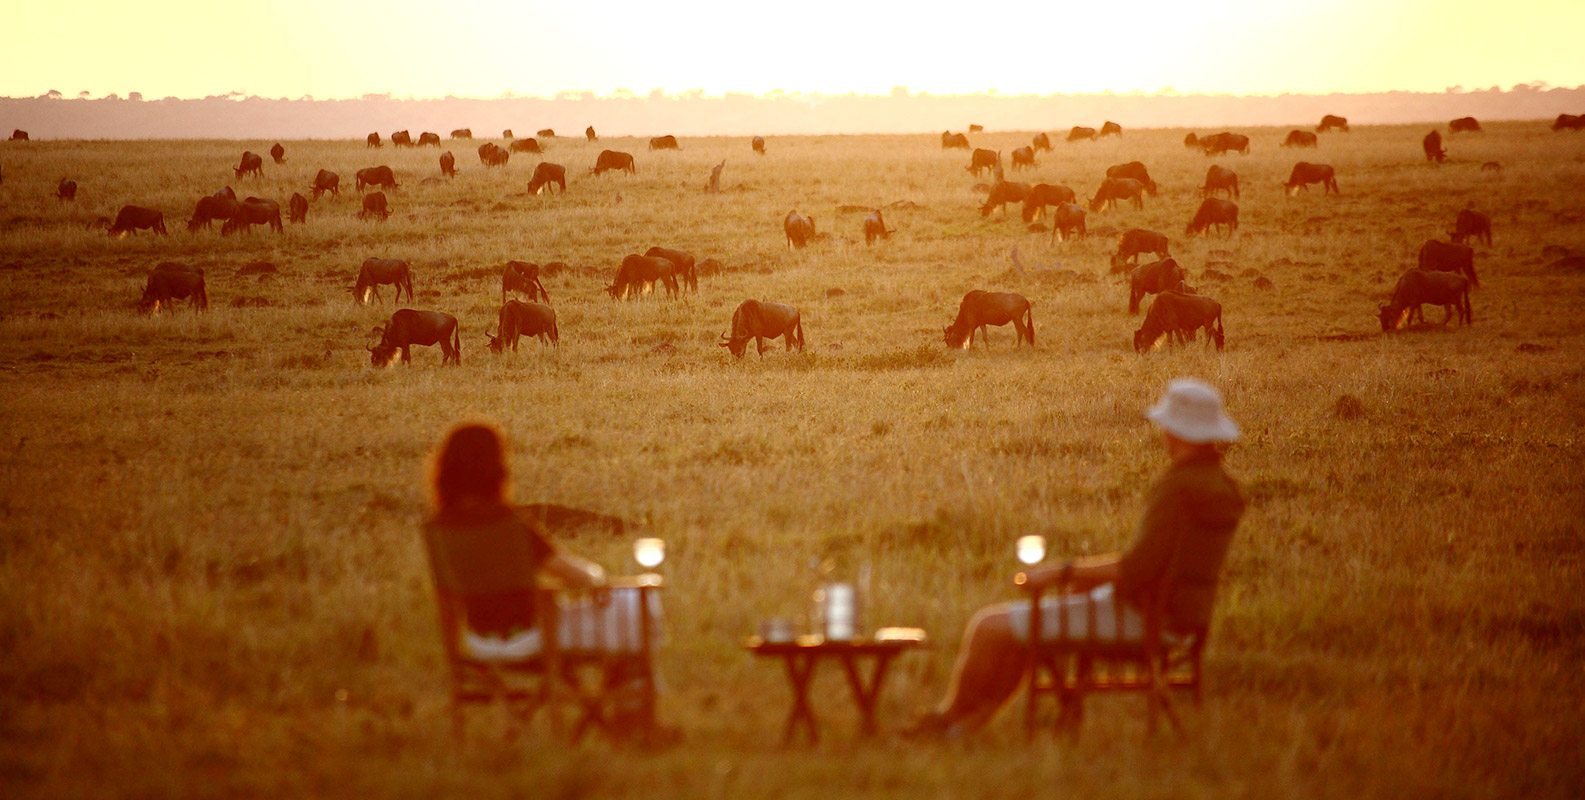 The Great Wildebeest Migration is especially impressive in the Serengeti's evening glow. © Elewana Collection